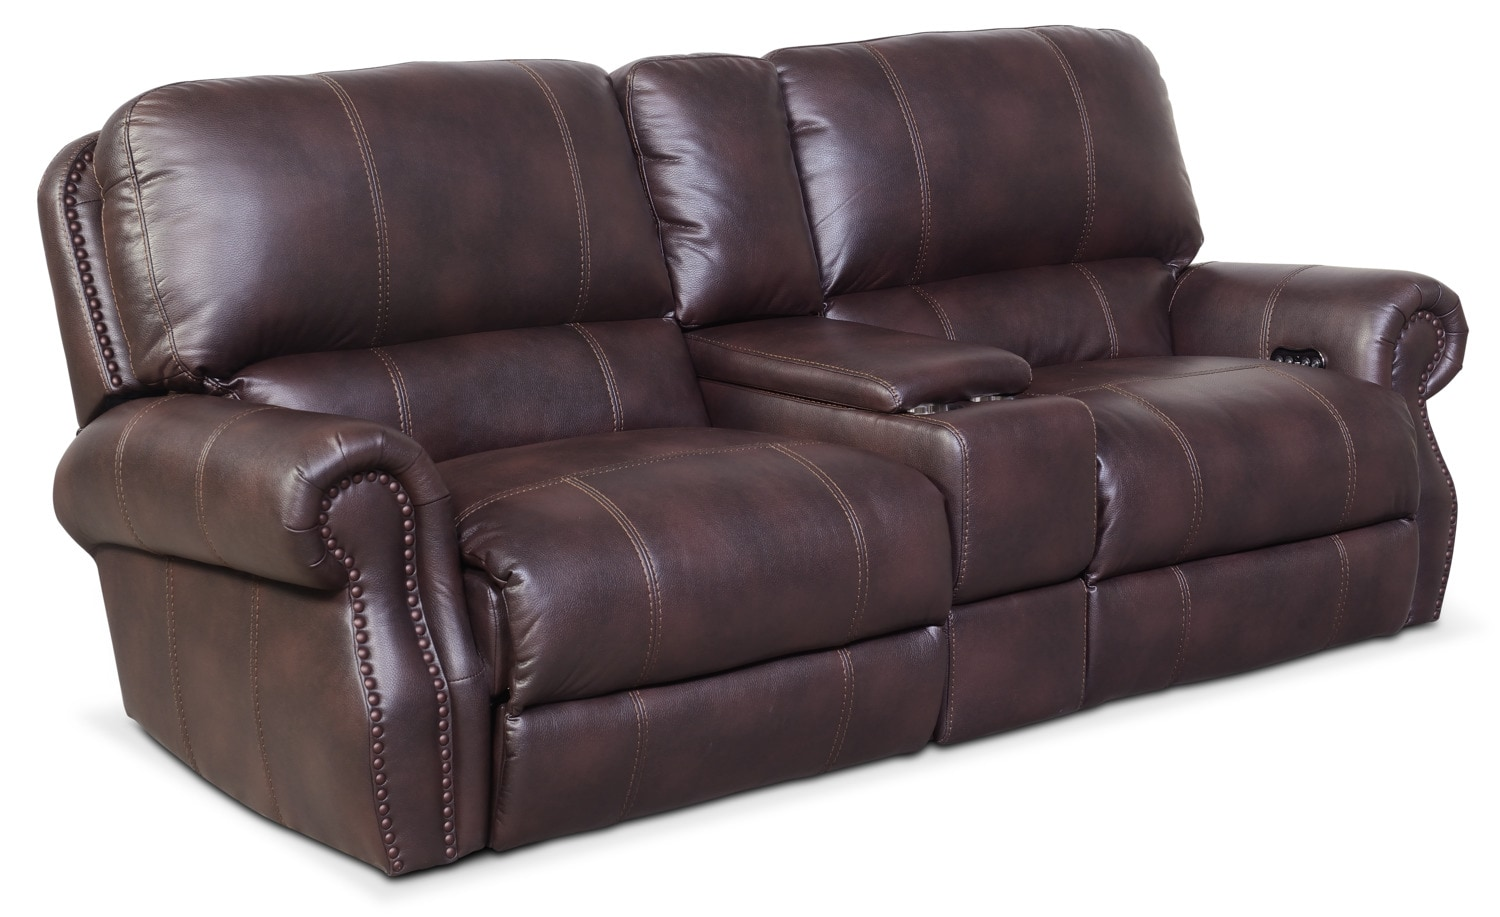 Merveilleux Dartmouth 3 Piece Power Reclining Sofa With Console   Burgundy